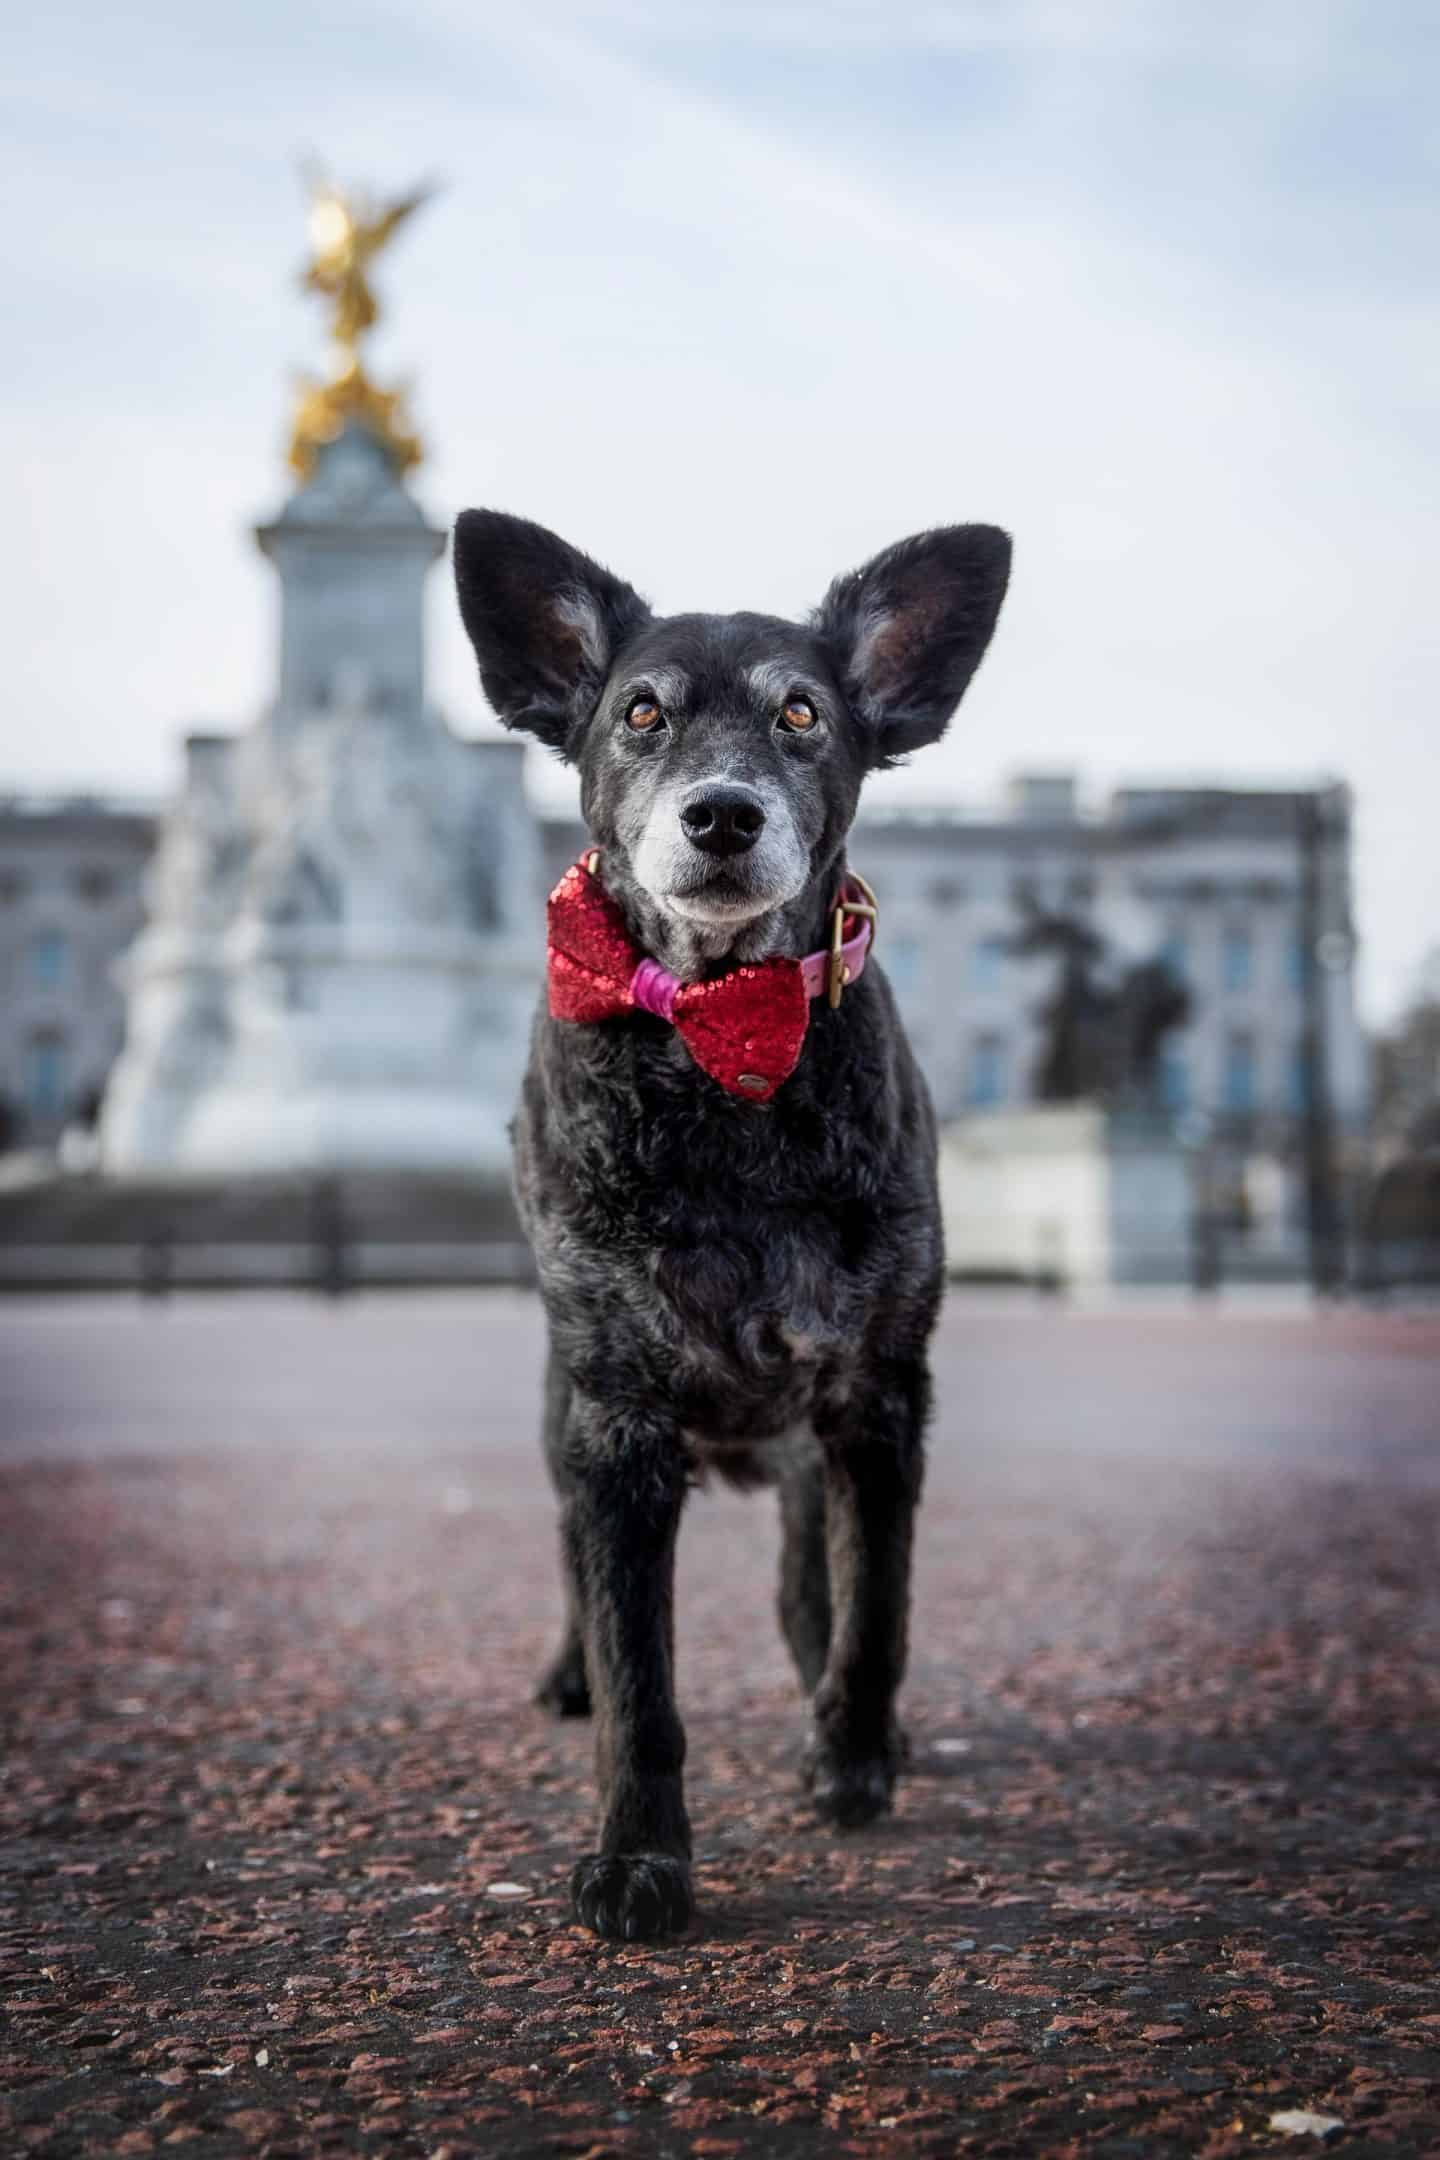 Belinha Strutting Down The Mall by Raven Imagery